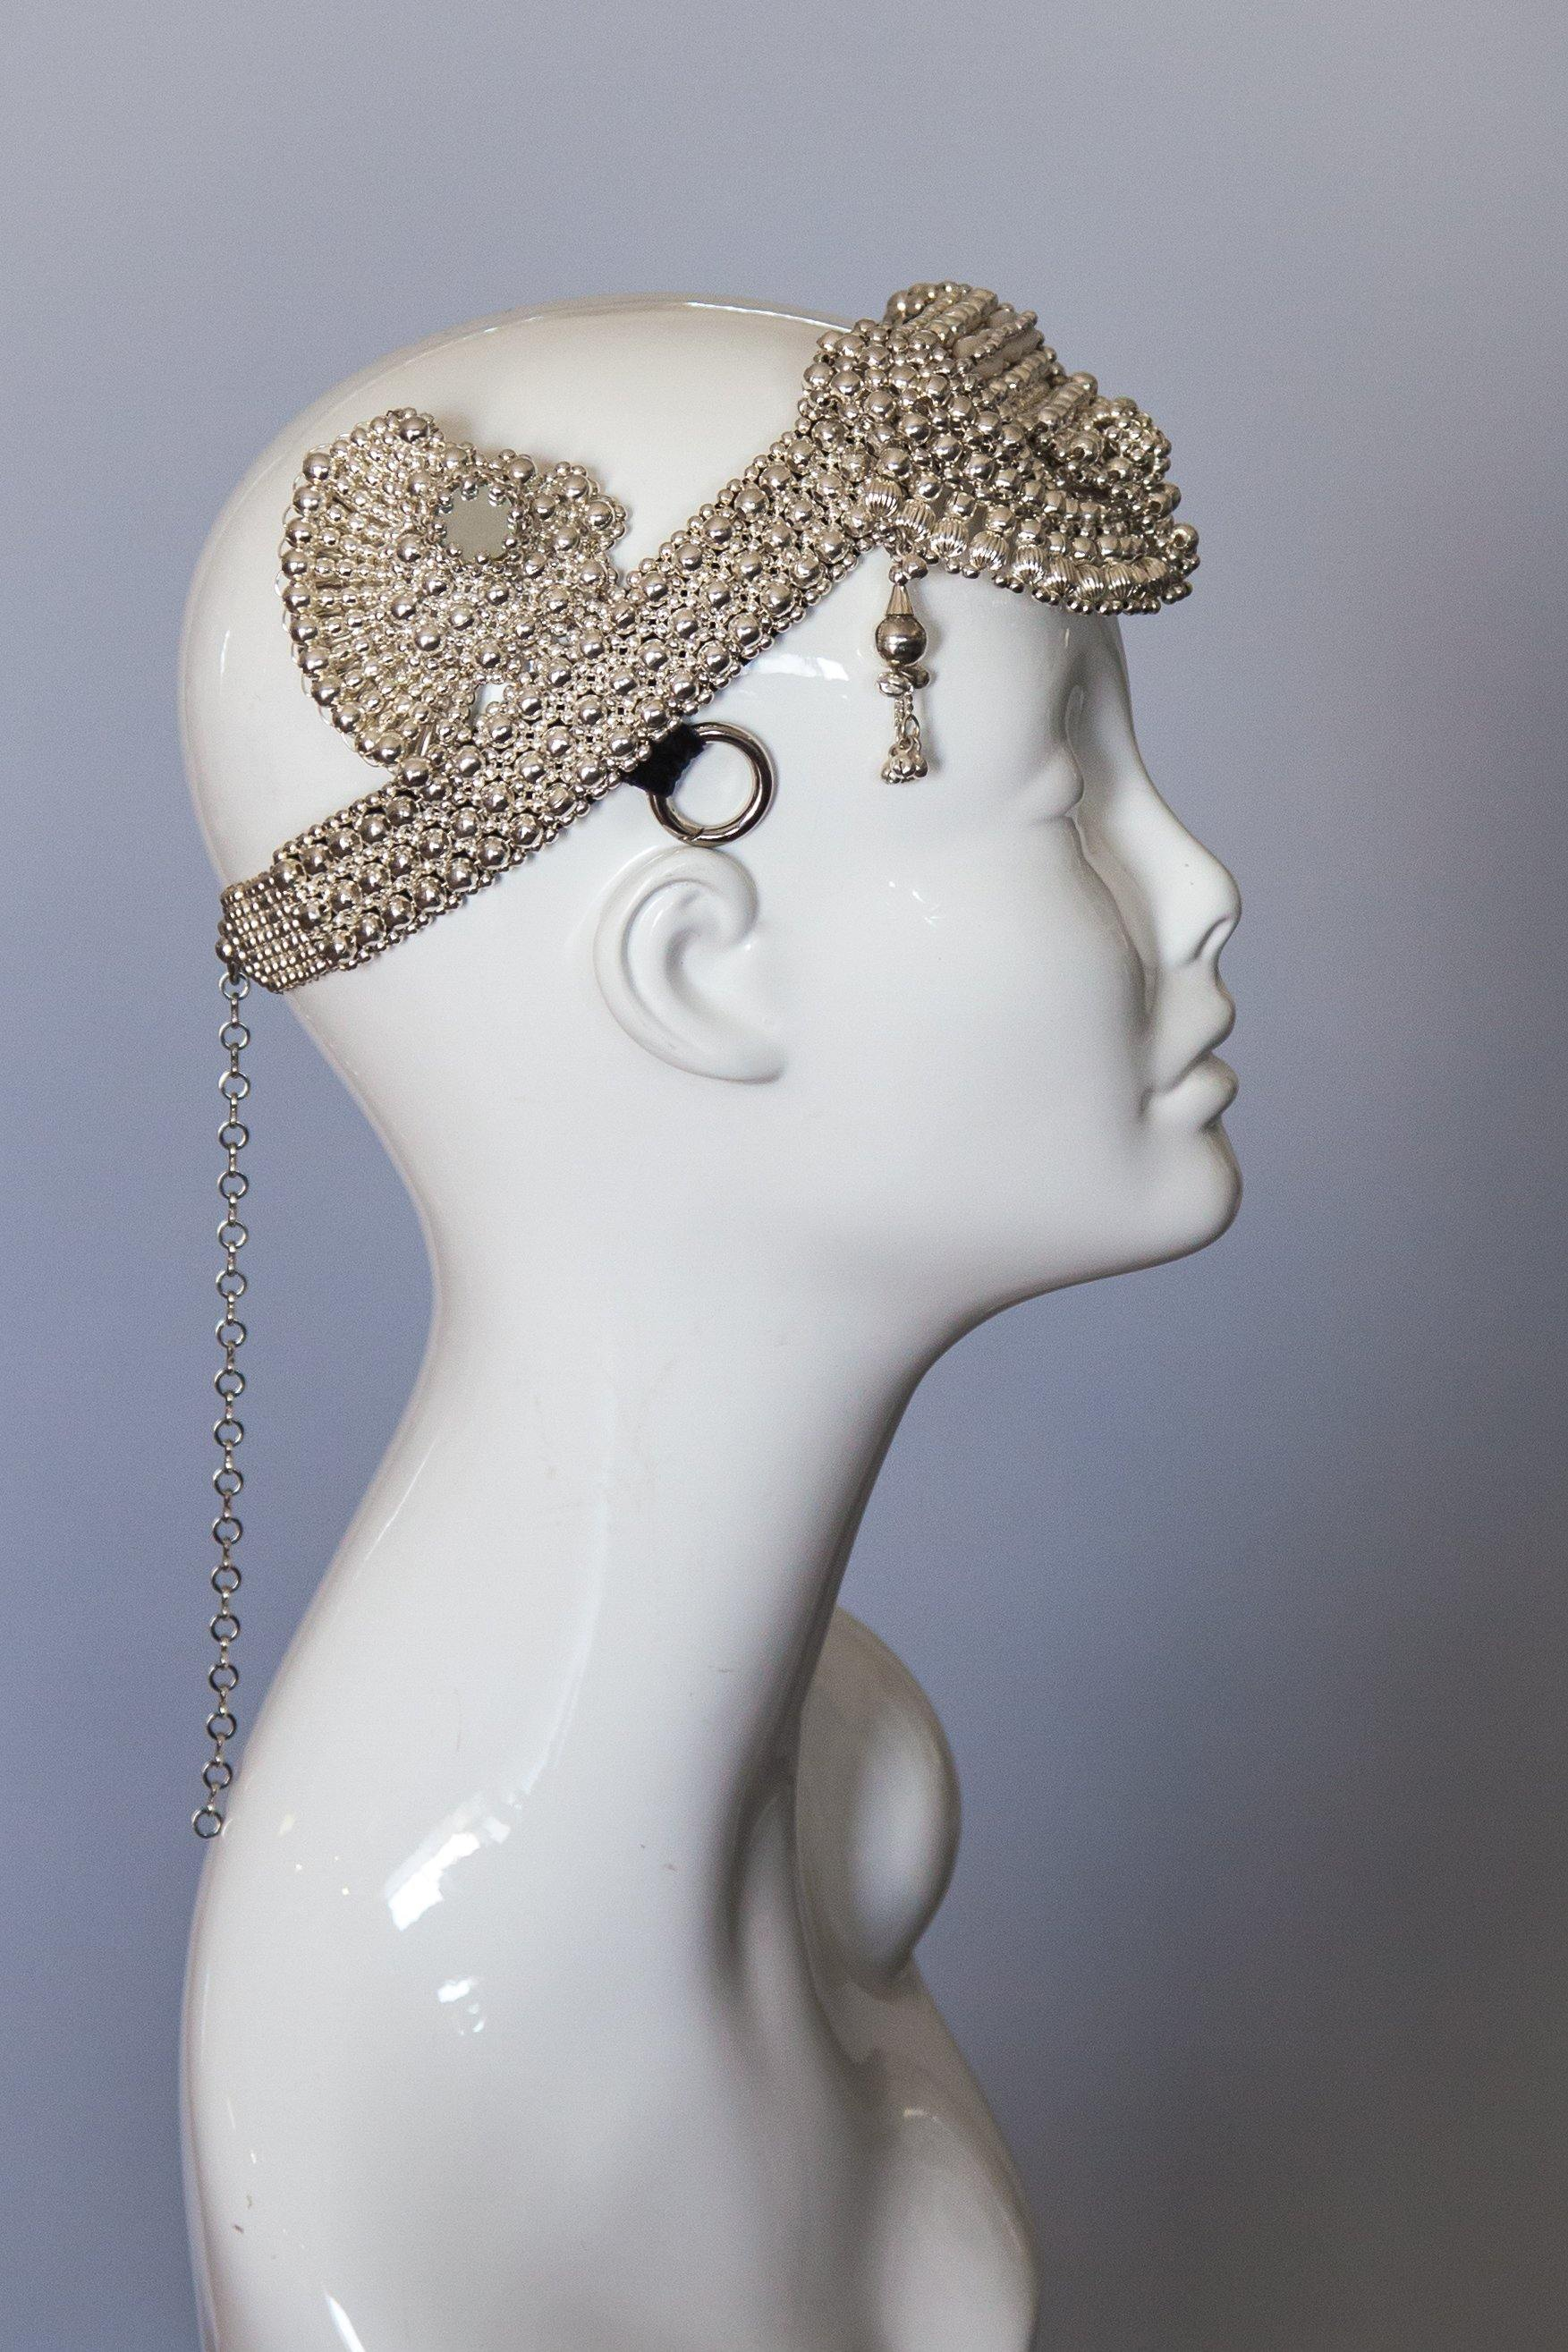 Anais Modular Crown with ANOUK Medallions